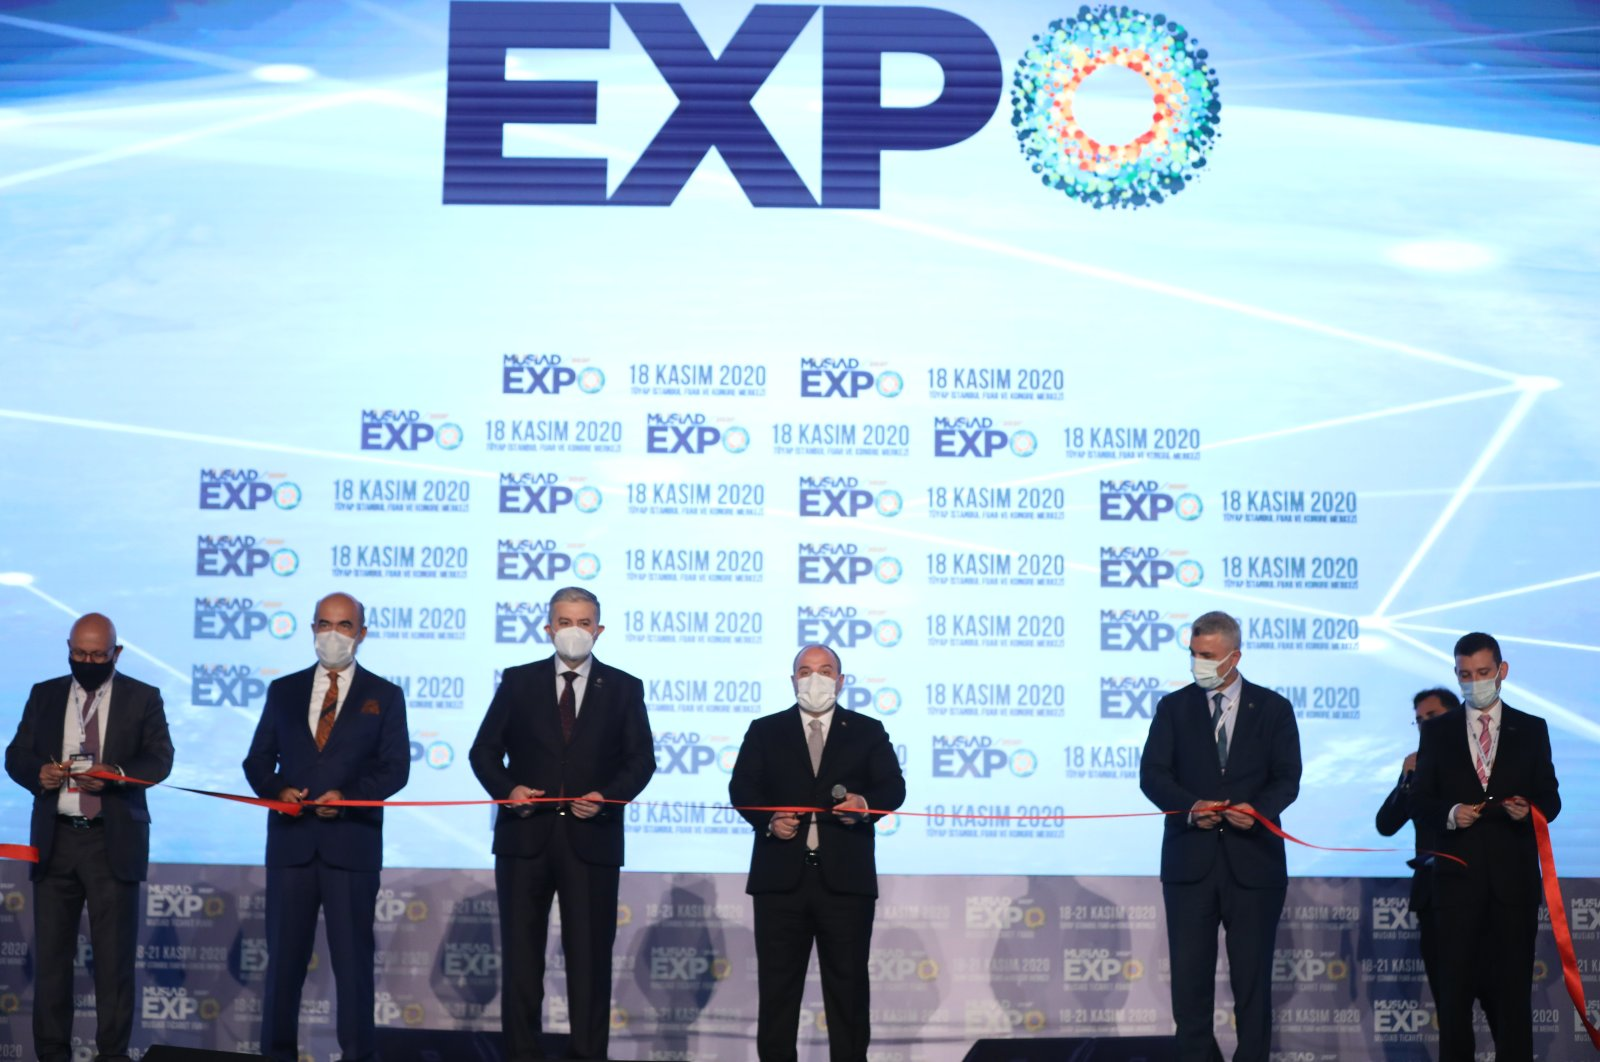 Industry and Technology Minister Mustafa Varank attends the opening ceremony of the MÜSIAD EXPO 2020 Trade Fair in Istanbul, Turkey, Nov. 18, 2020. (AA Photo)